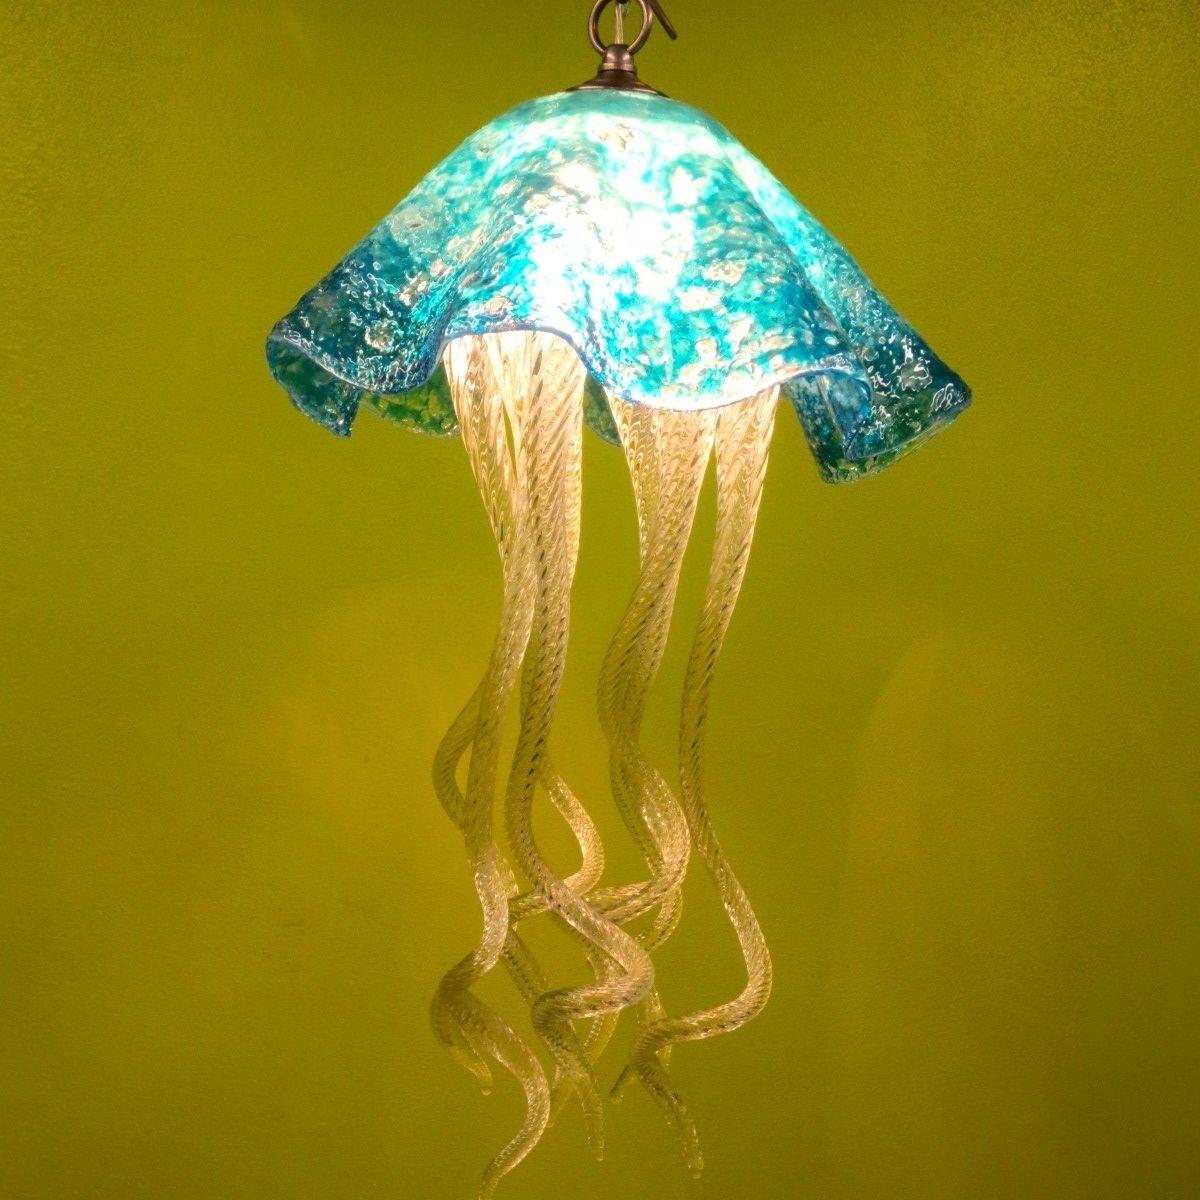 Buy A Hand Made Jellyfish Pendant Light – Turquoise Jellyfish Pertaining To Favorite Turquoise Crystal Chandelier Lights (View 4 of 20)